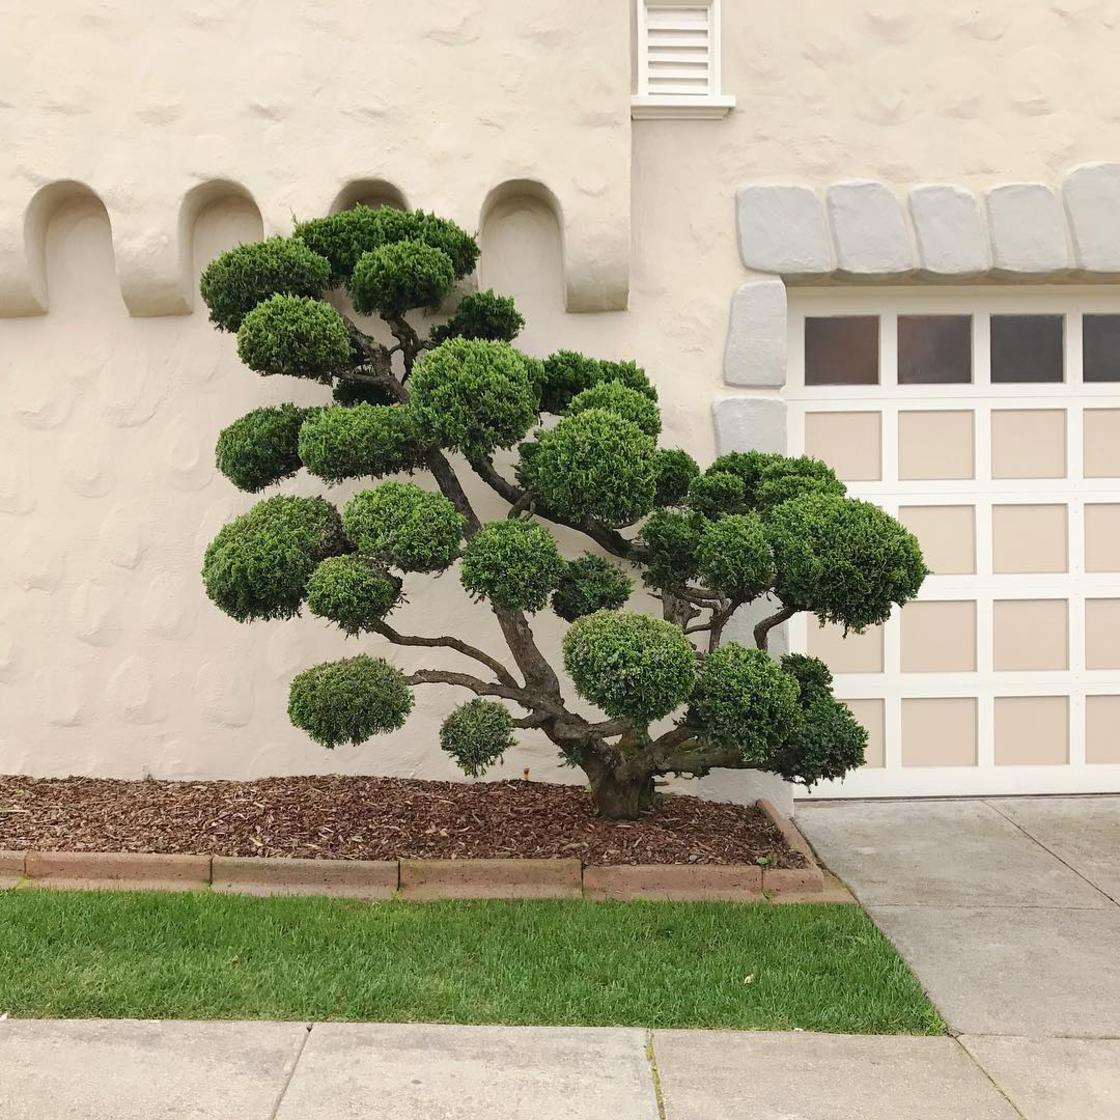 Surreal Trees - She documents the strange trees of San Francisco